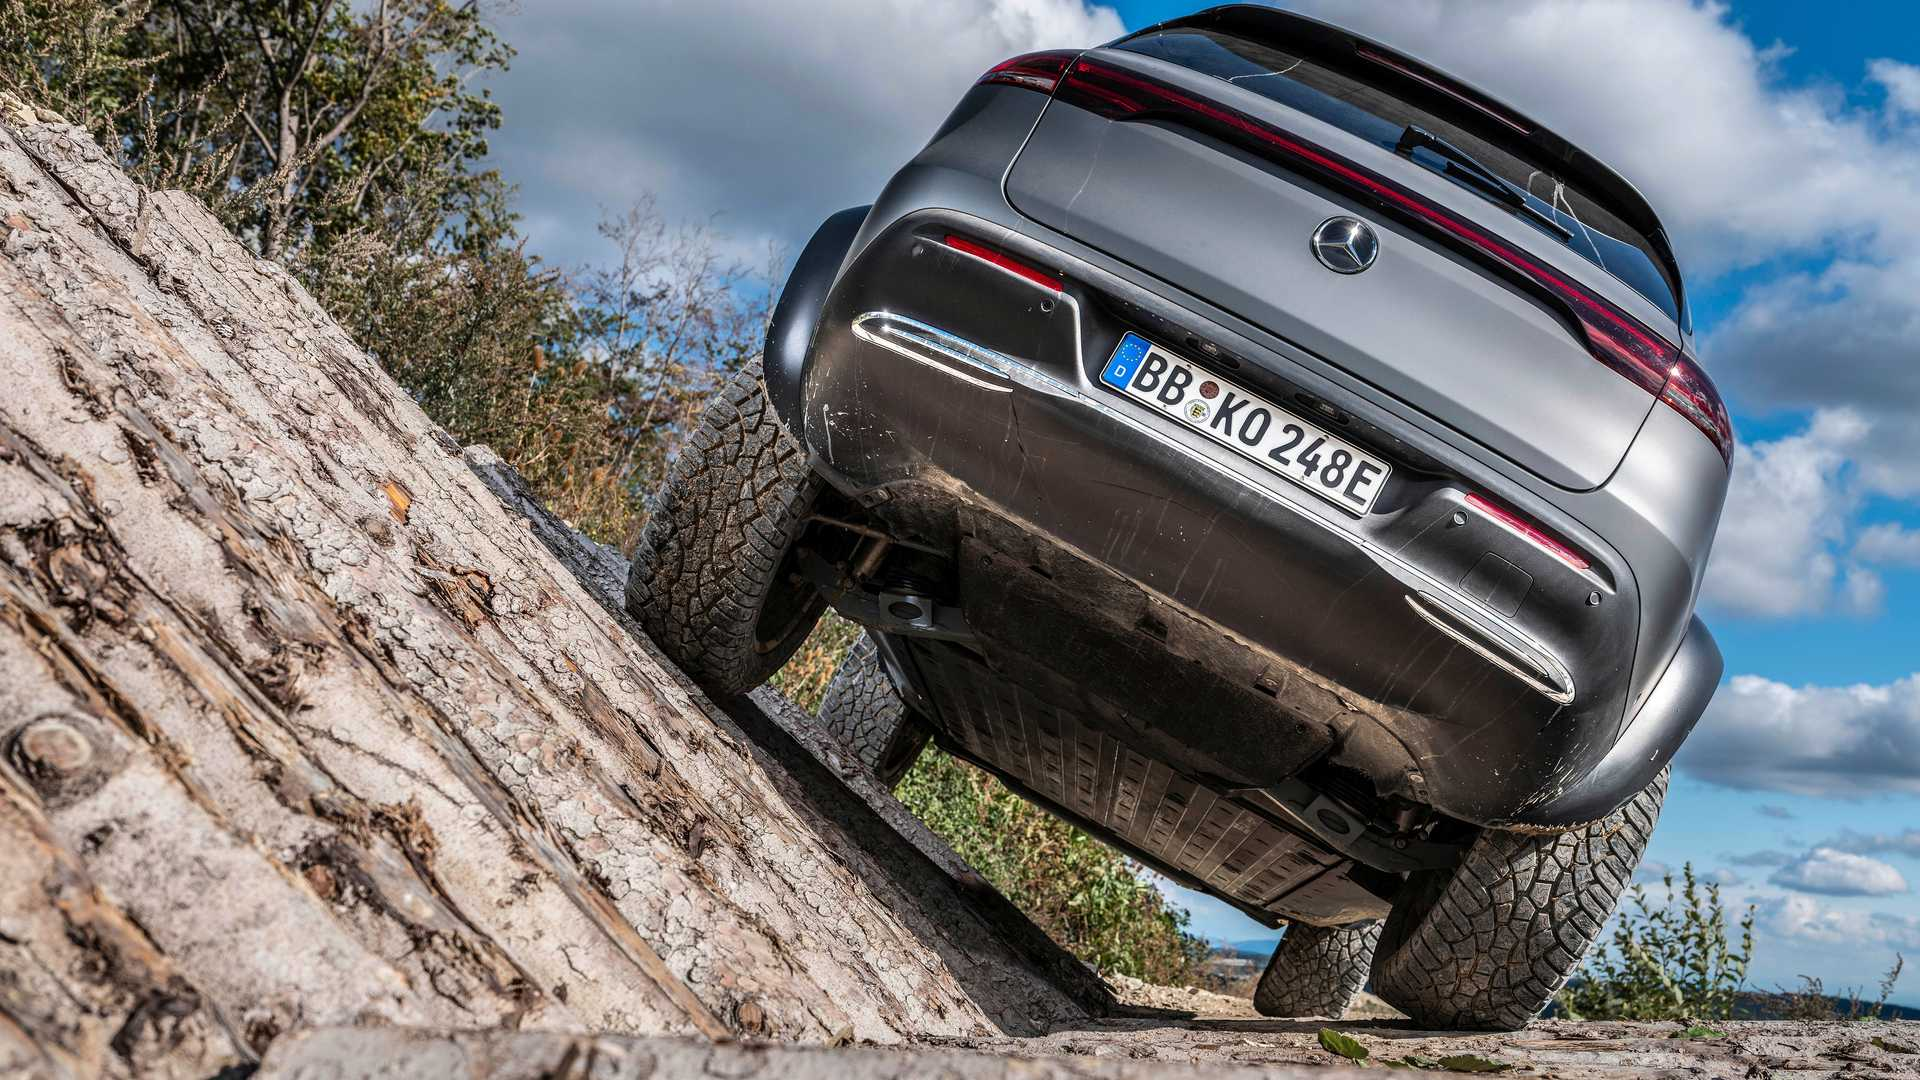 Mercedes-Benz has shared a new video showcasing the capabilities of its newest all-electric SUV, the EQC 4x4². The pre-production car was running tests on flooded terrain.